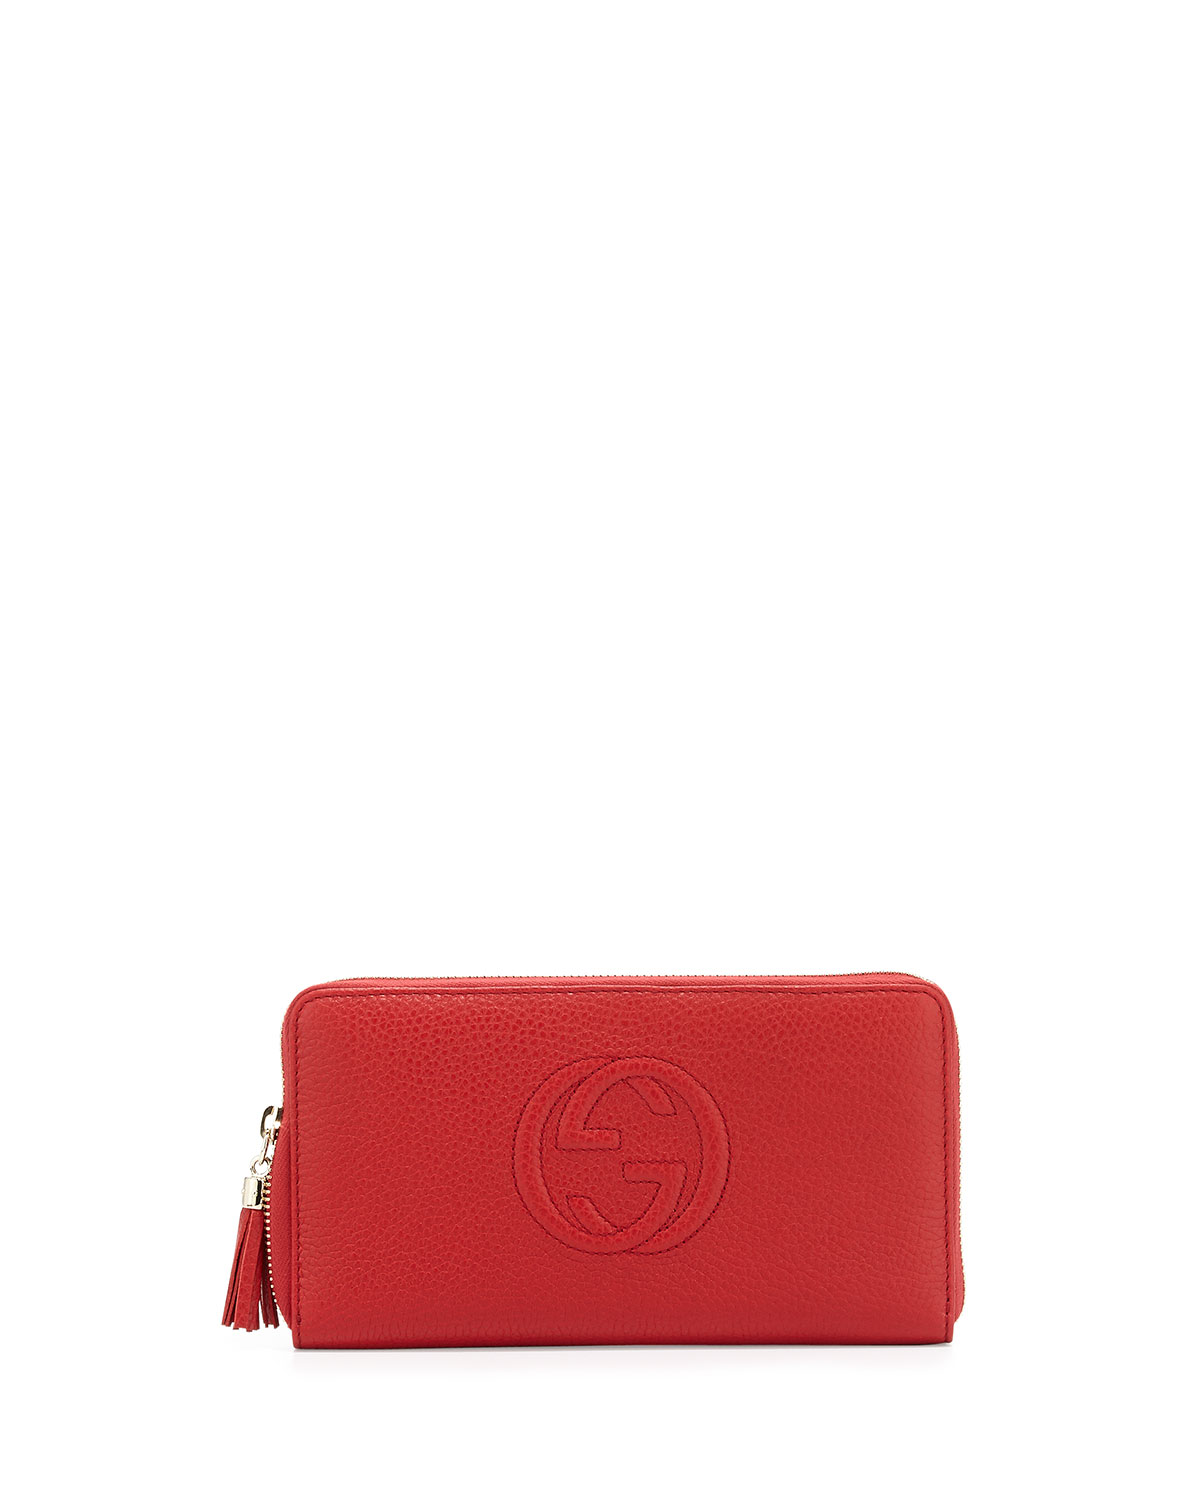 86b93093e7b9 Gucci Soho Leather Travel Zip Around Wallet Red - Image Of Wallet